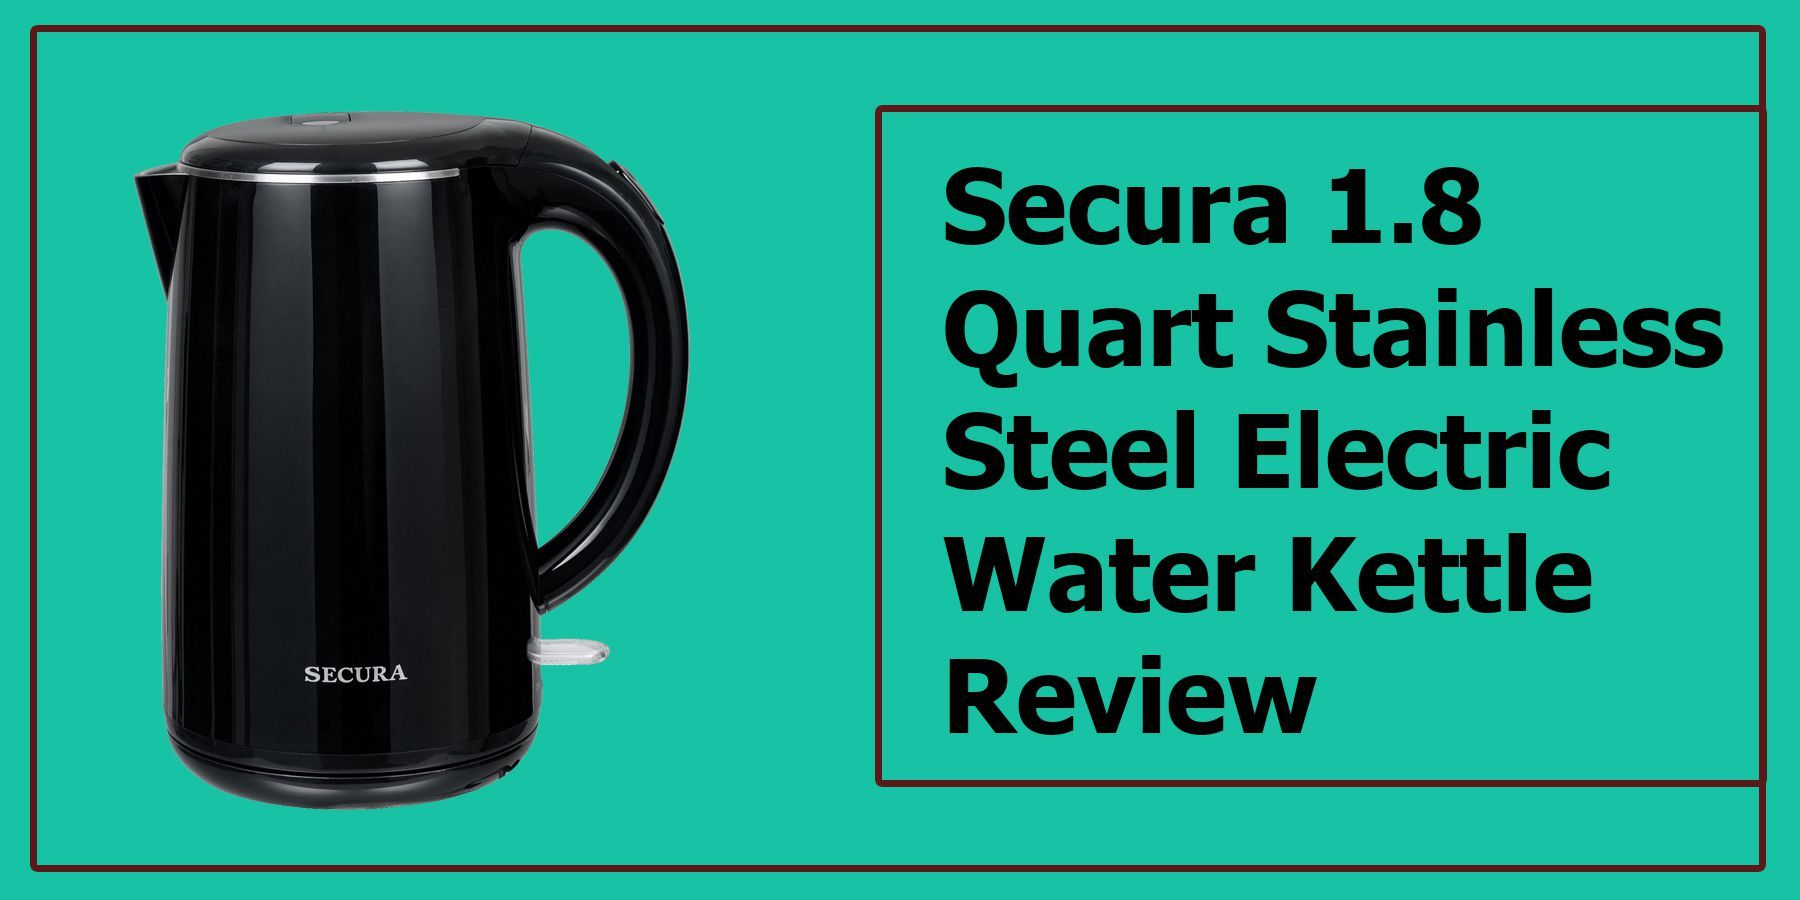 Secura 1.8 Quart Stainless Steel Electric Water Kettle Review